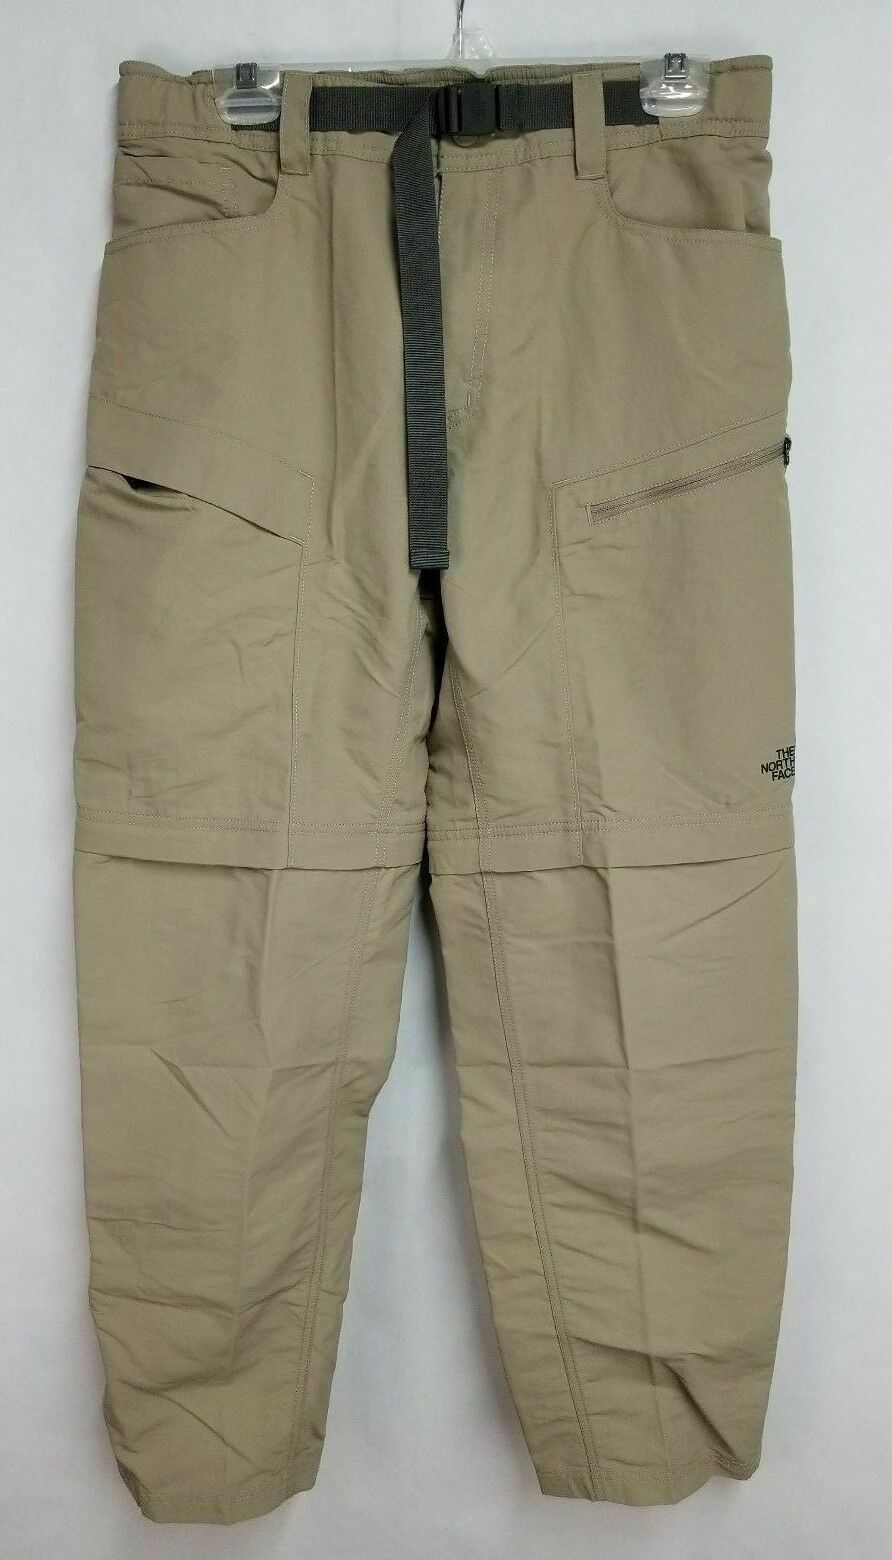 North Face Mens sz 32x32 Tan Nylon Belted Zip Off Cargo Hiking Pants